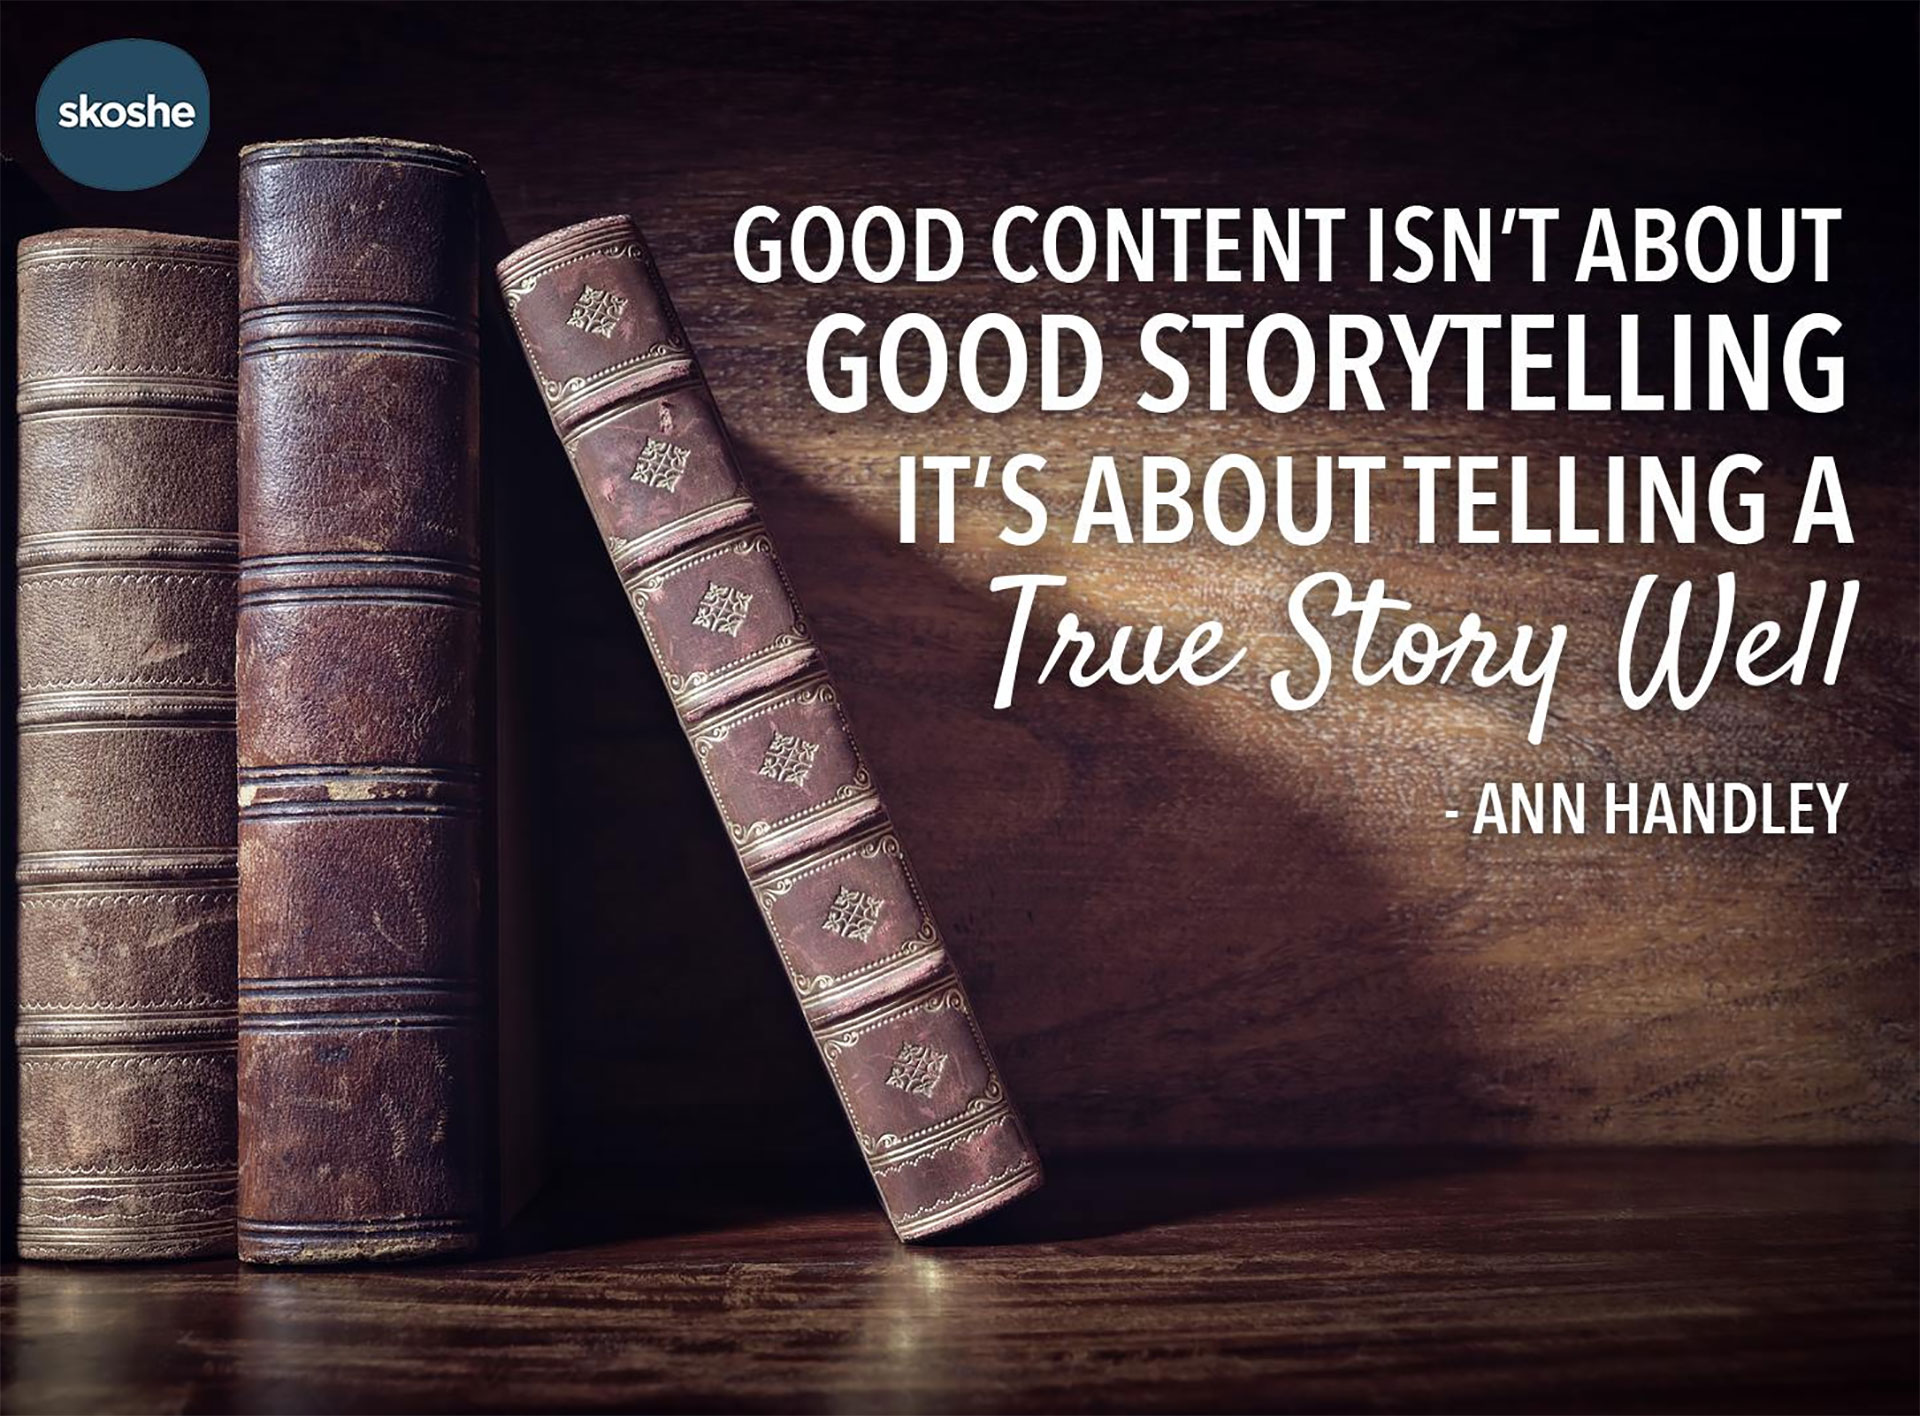 The best content is telling a true story well. - Ann Hadley